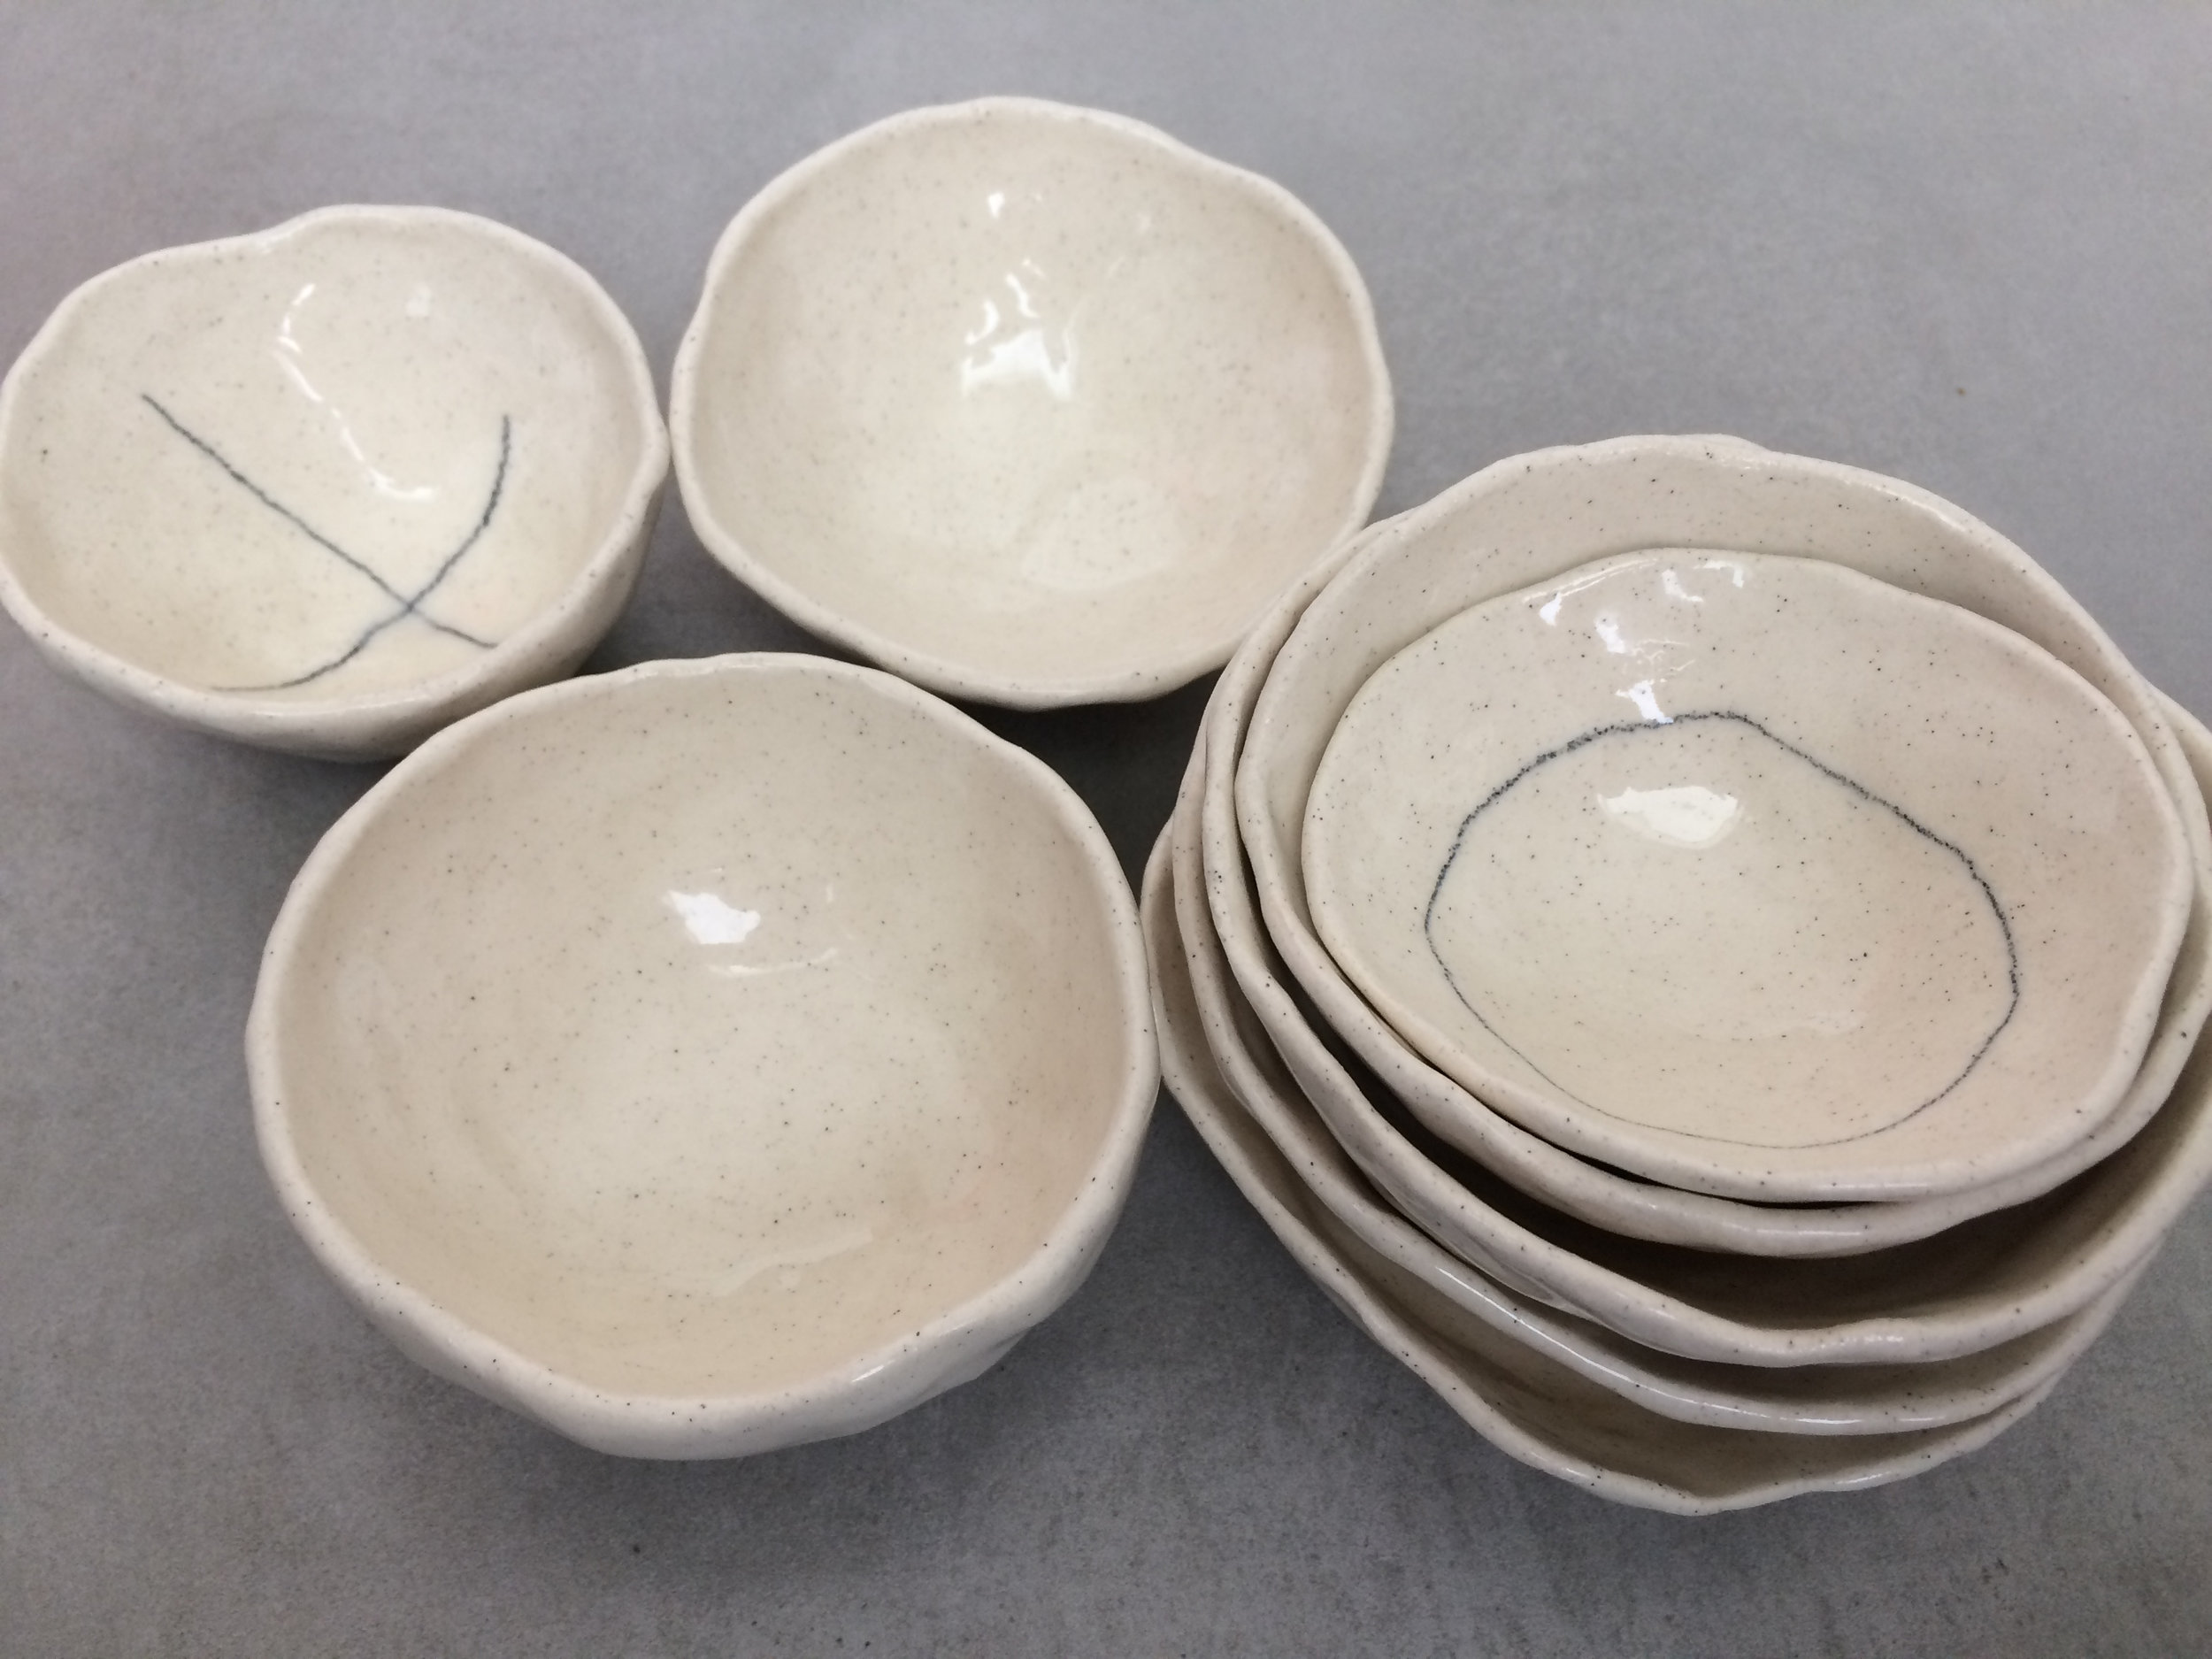 Nesting bowls by Susie Ripley